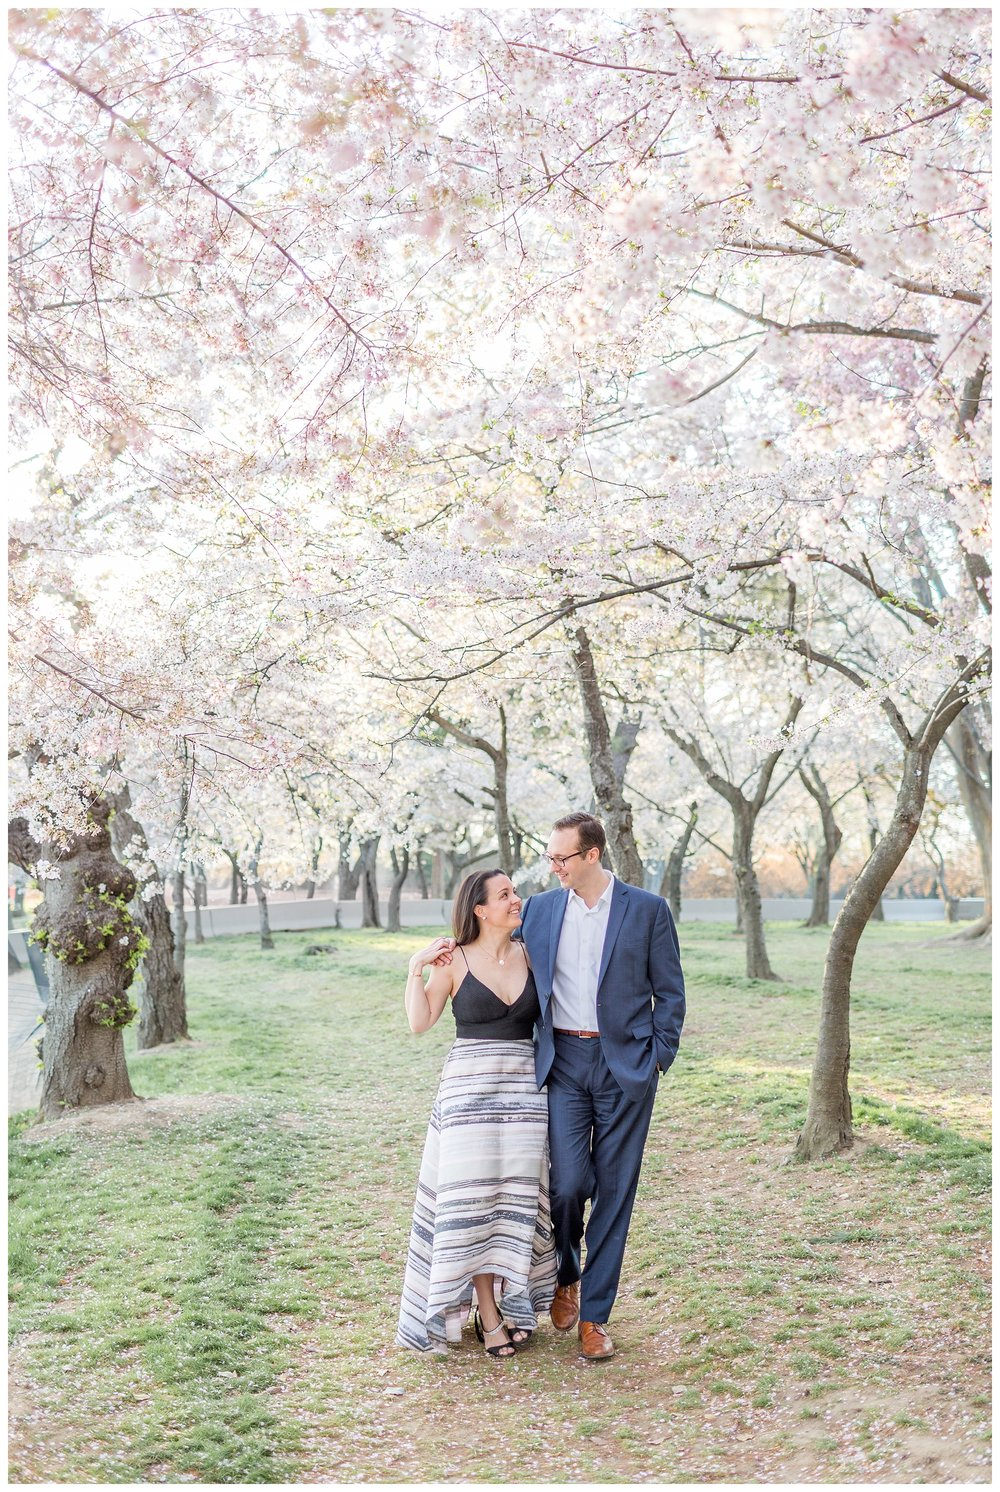 DC+Cherry+Blossom+Engagement+Kir2ben+Photography_0017.jpg